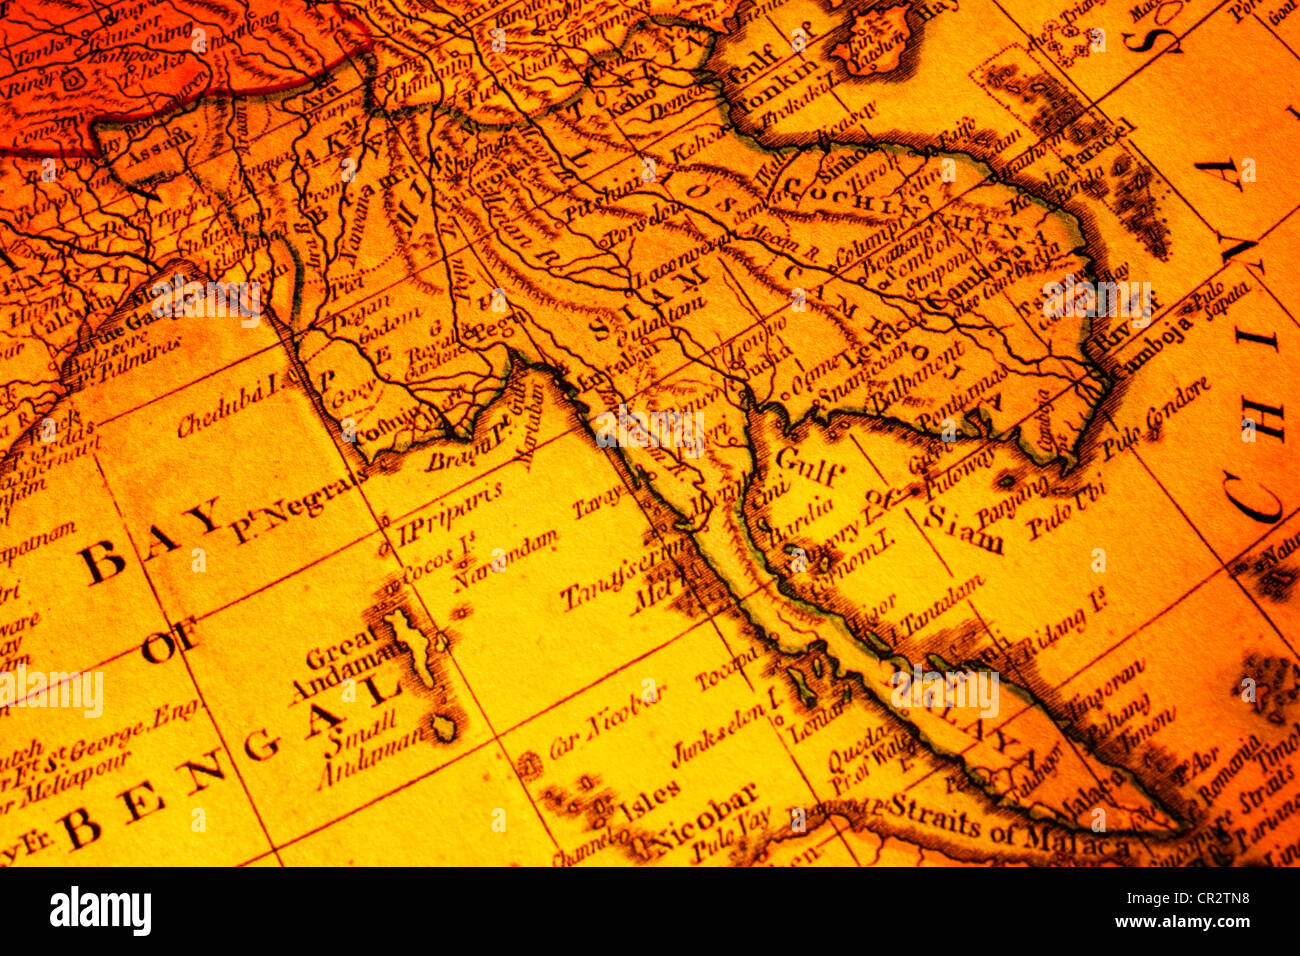 old map of south east asia focused on the word siam includes malaysia burma thailand cambodia vietnam laos